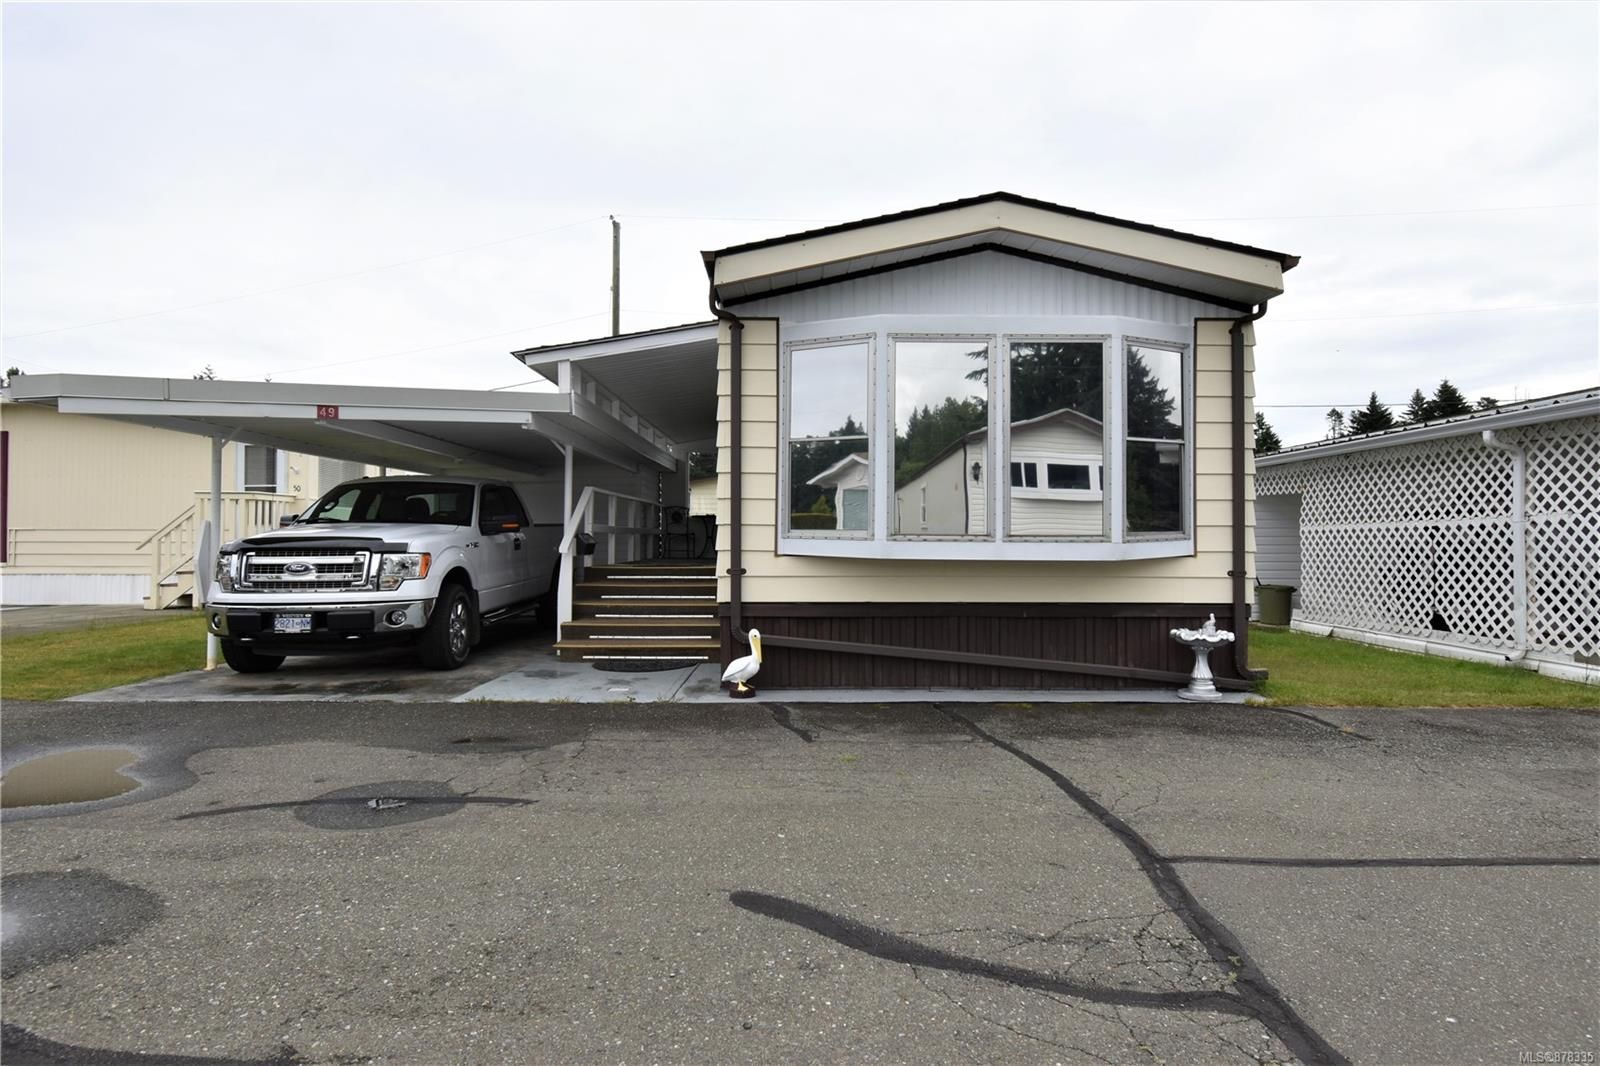 Main Photo: 49 1240 Wilkinson Rd in : CV Comox Peninsula Manufactured Home for sale (Comox Valley)  : MLS®# 878335